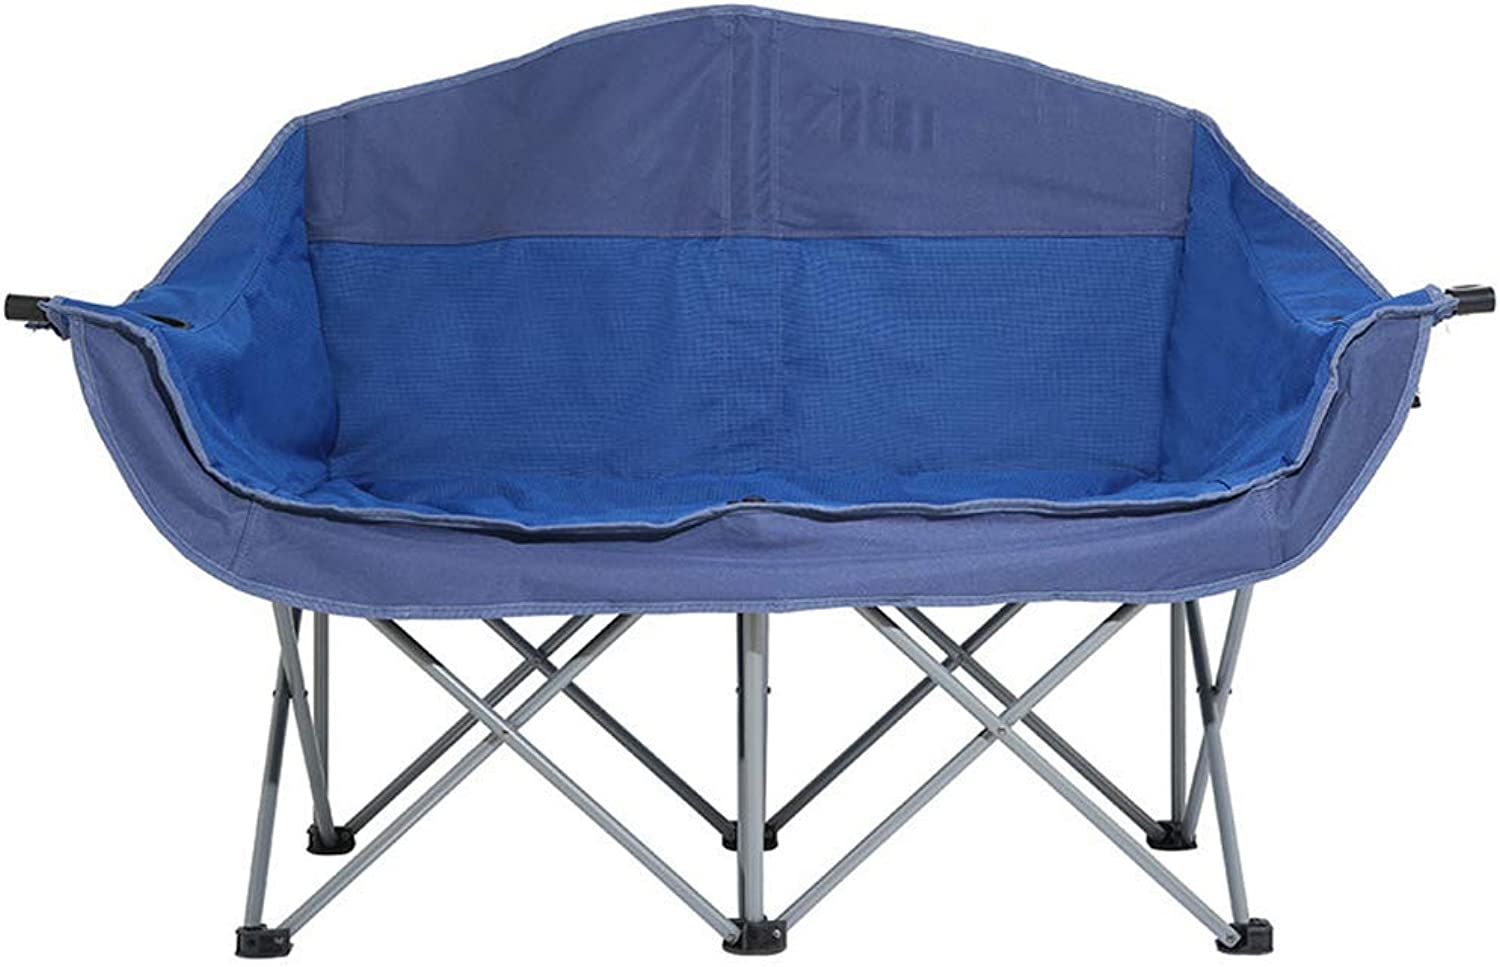 Outdoor Products Portable Folding Chairs Folding Stool Outdoor Family Travel Picnic Camping Barbecue Garden Two Beach Chair